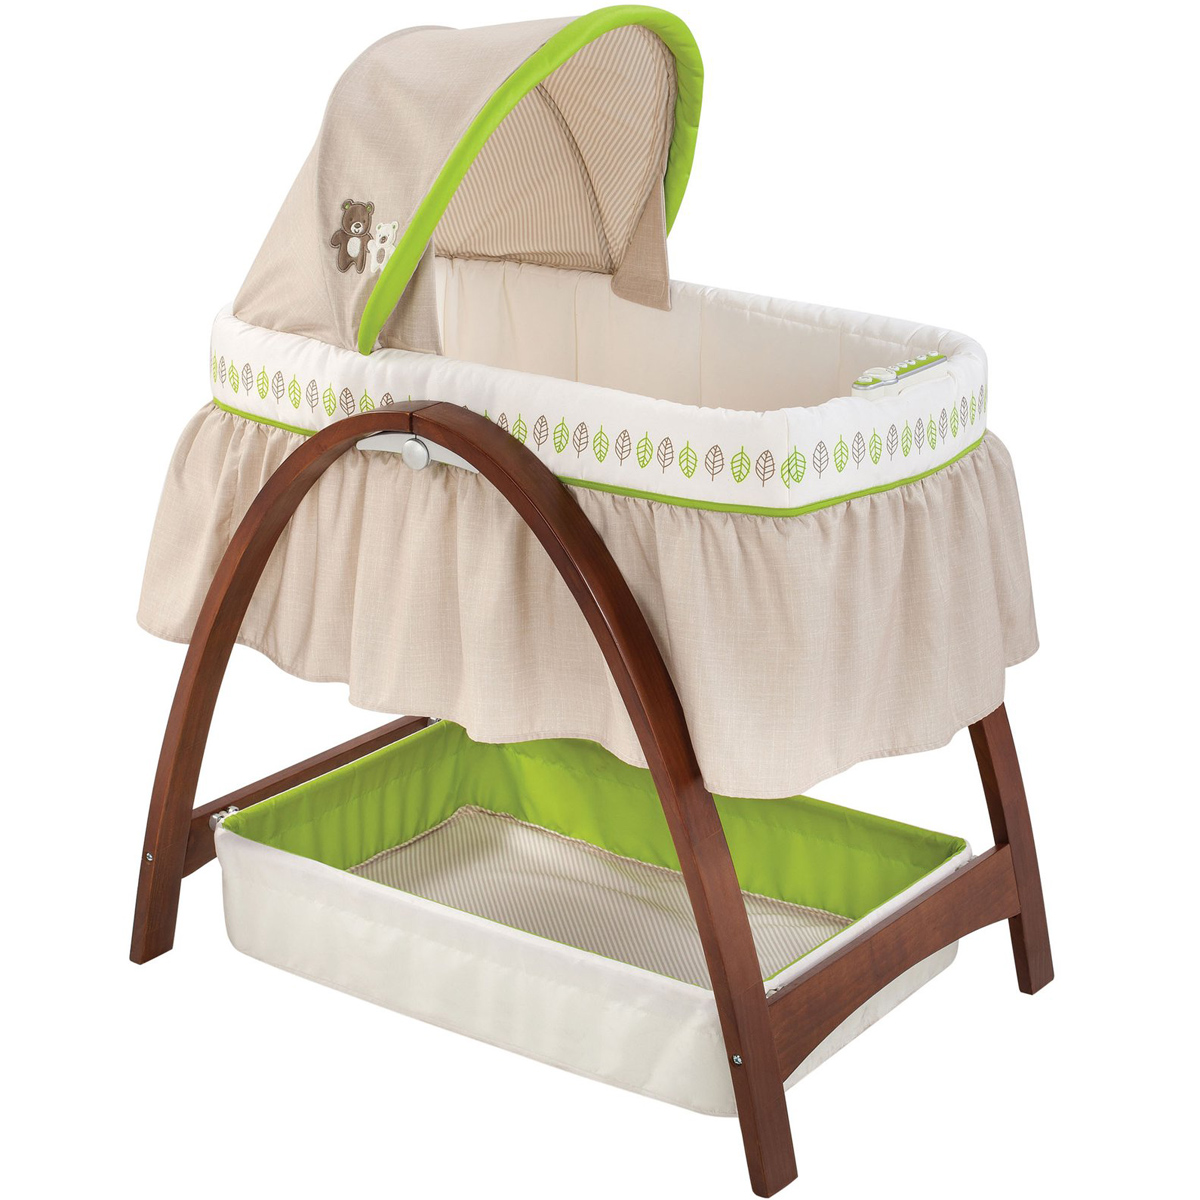 Noi rung Summer SM26070 Bentwood Bassinet With Monitor Baby